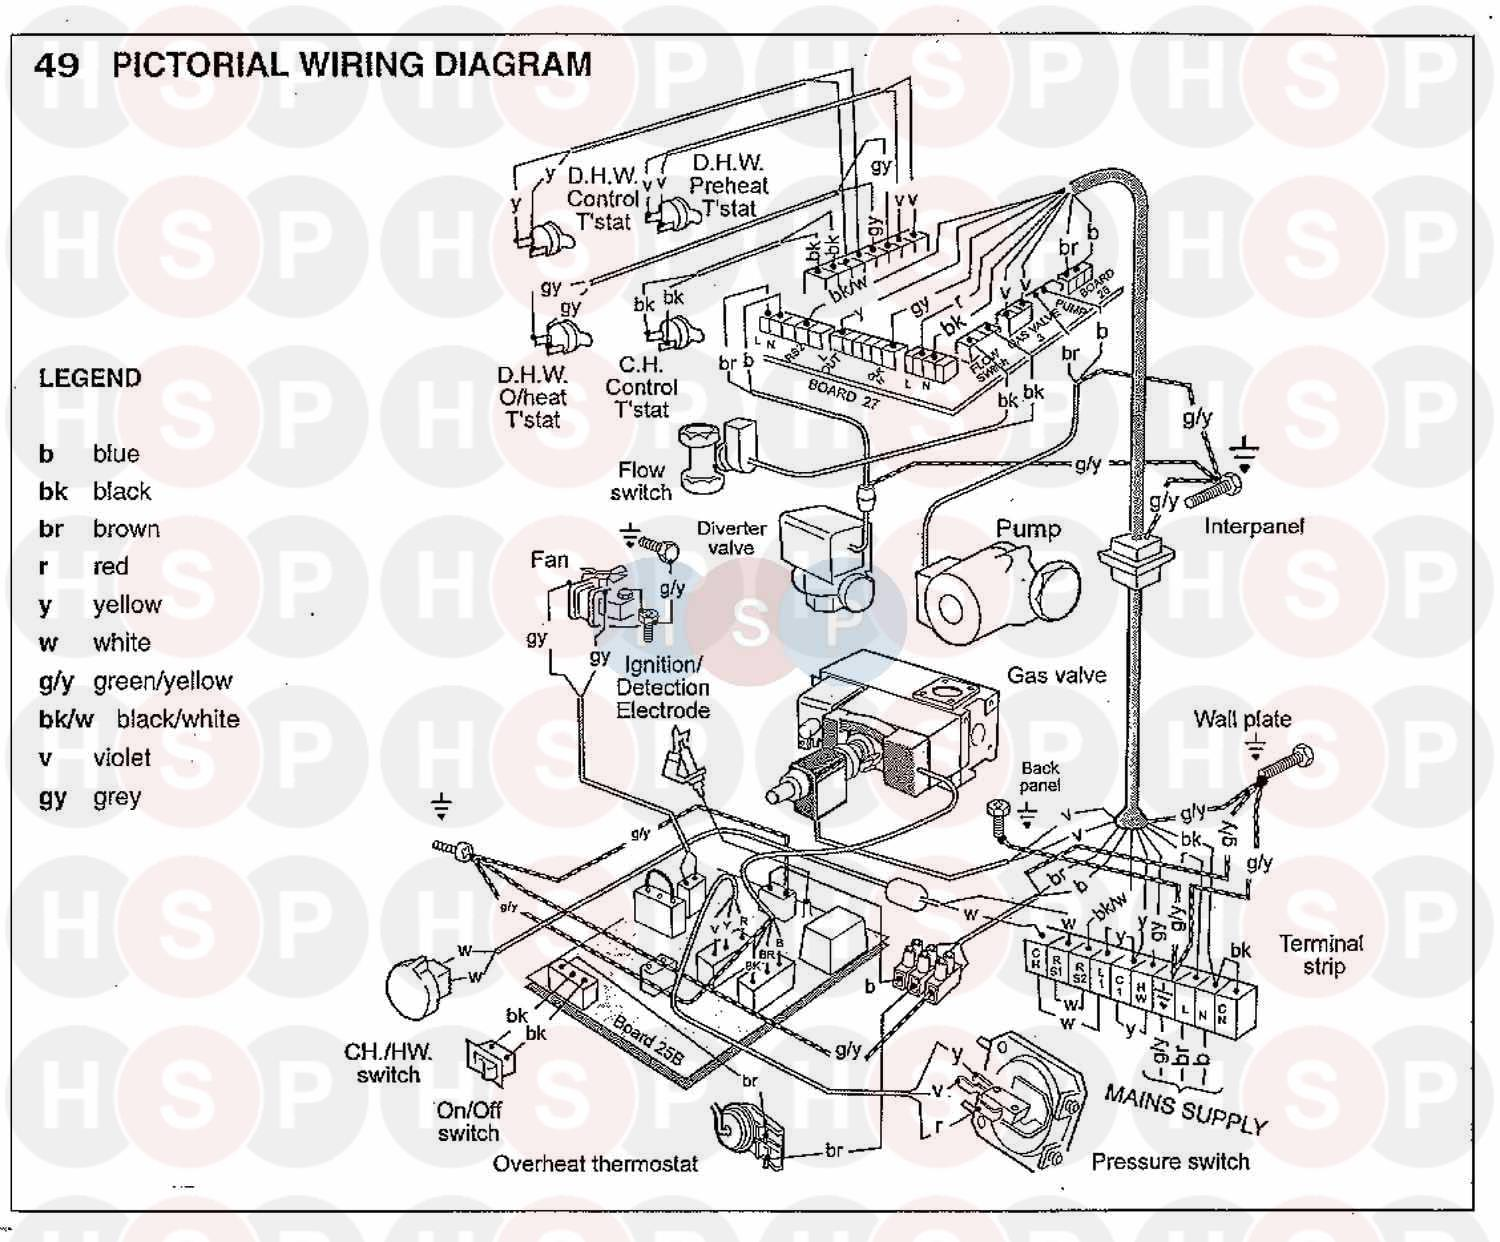 Ideal CLASSIC COMBI 280 (Wiring Diagram 1) Diagram